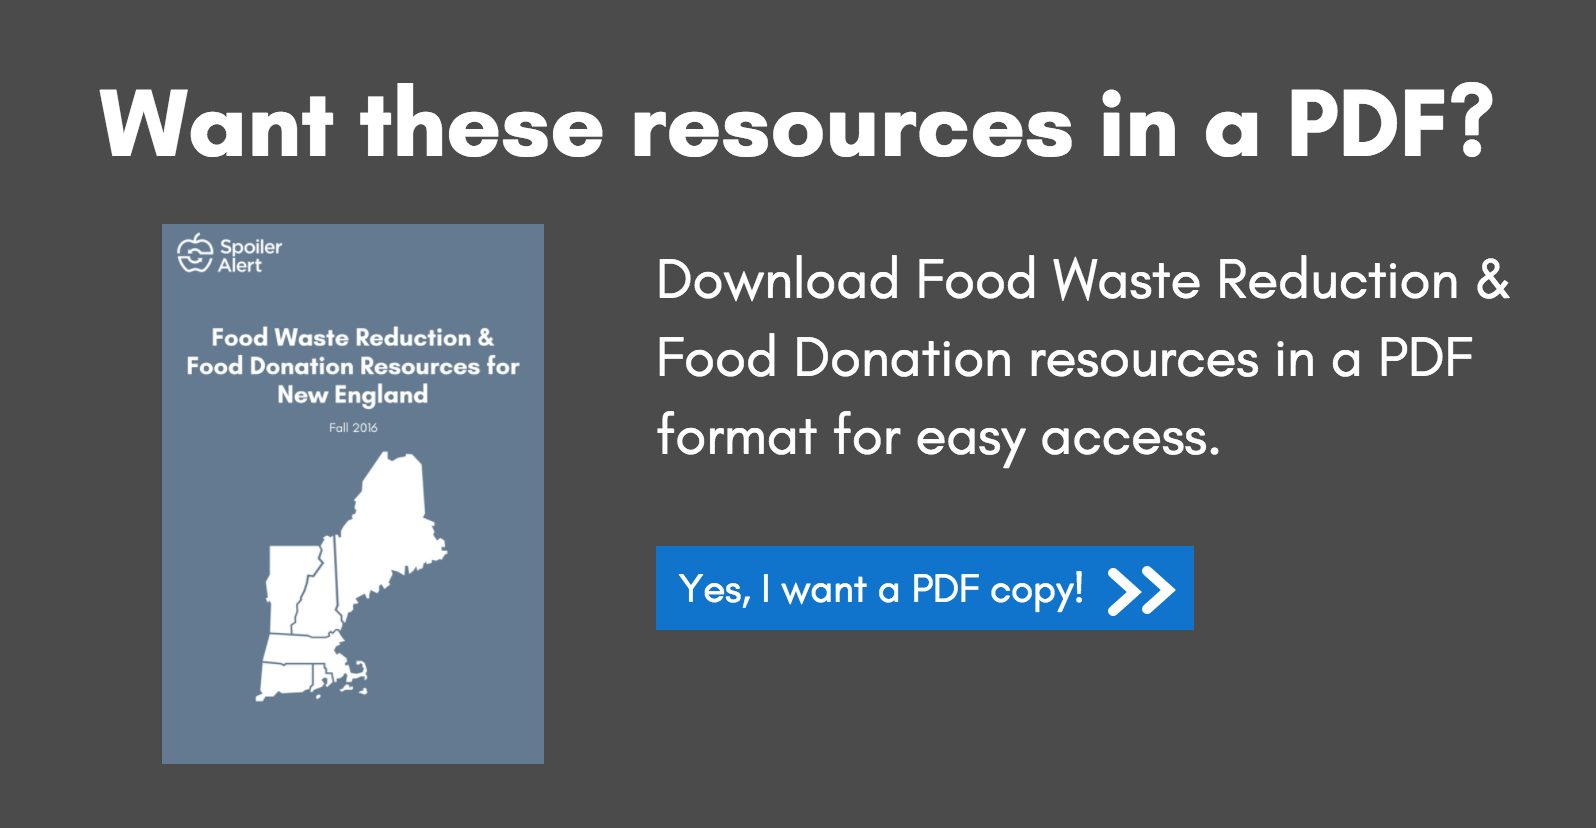 Download Food Waste Reduction & Food Donation Resources for New England Businesses